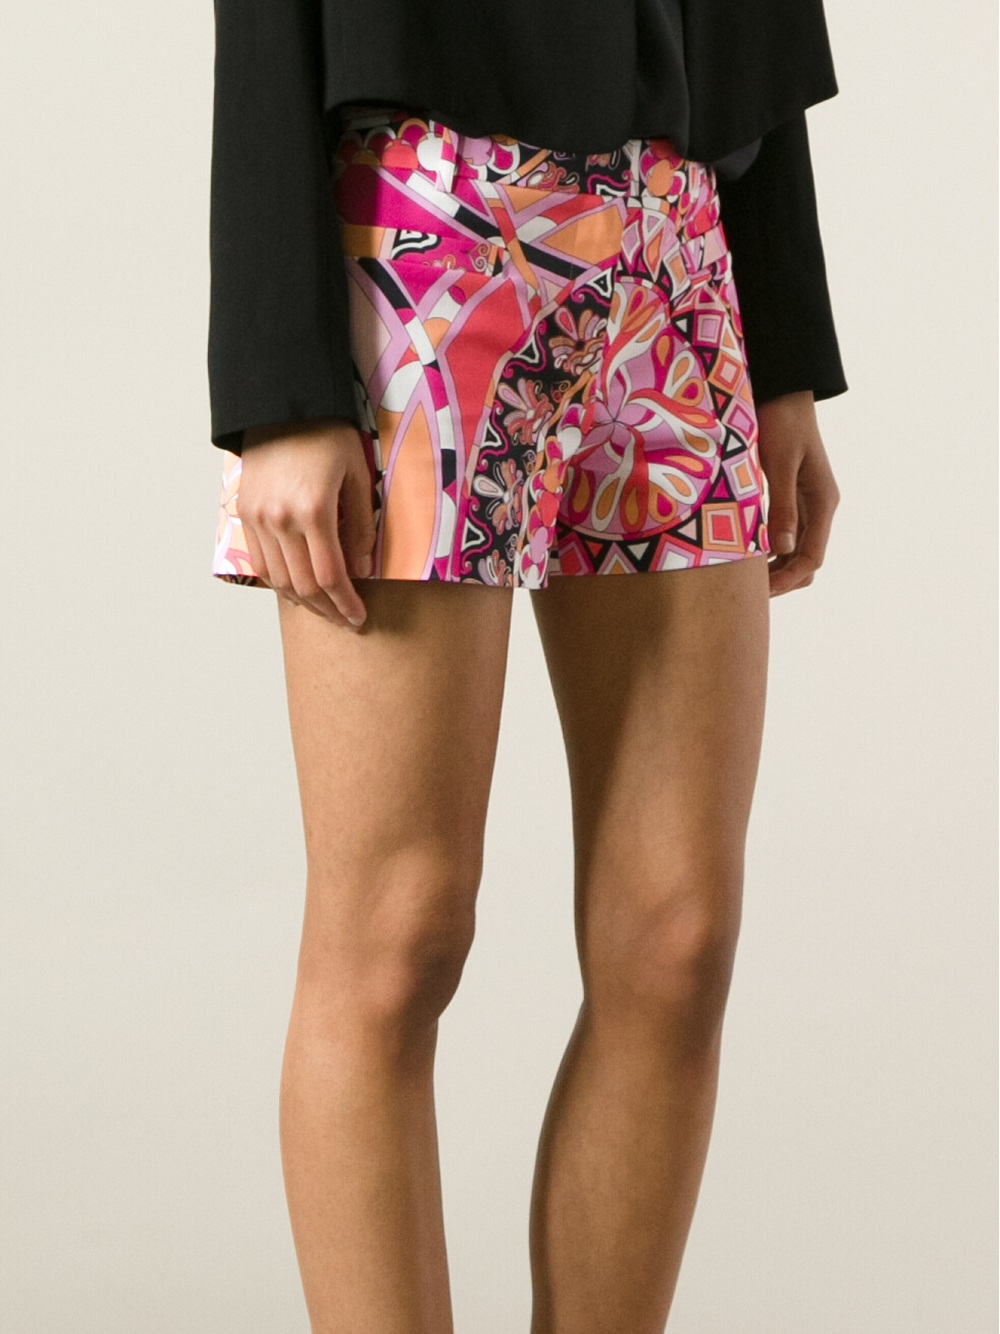 Emilio Pucci printed shorts Get To Buy Cheap Price bZfdaWV8r